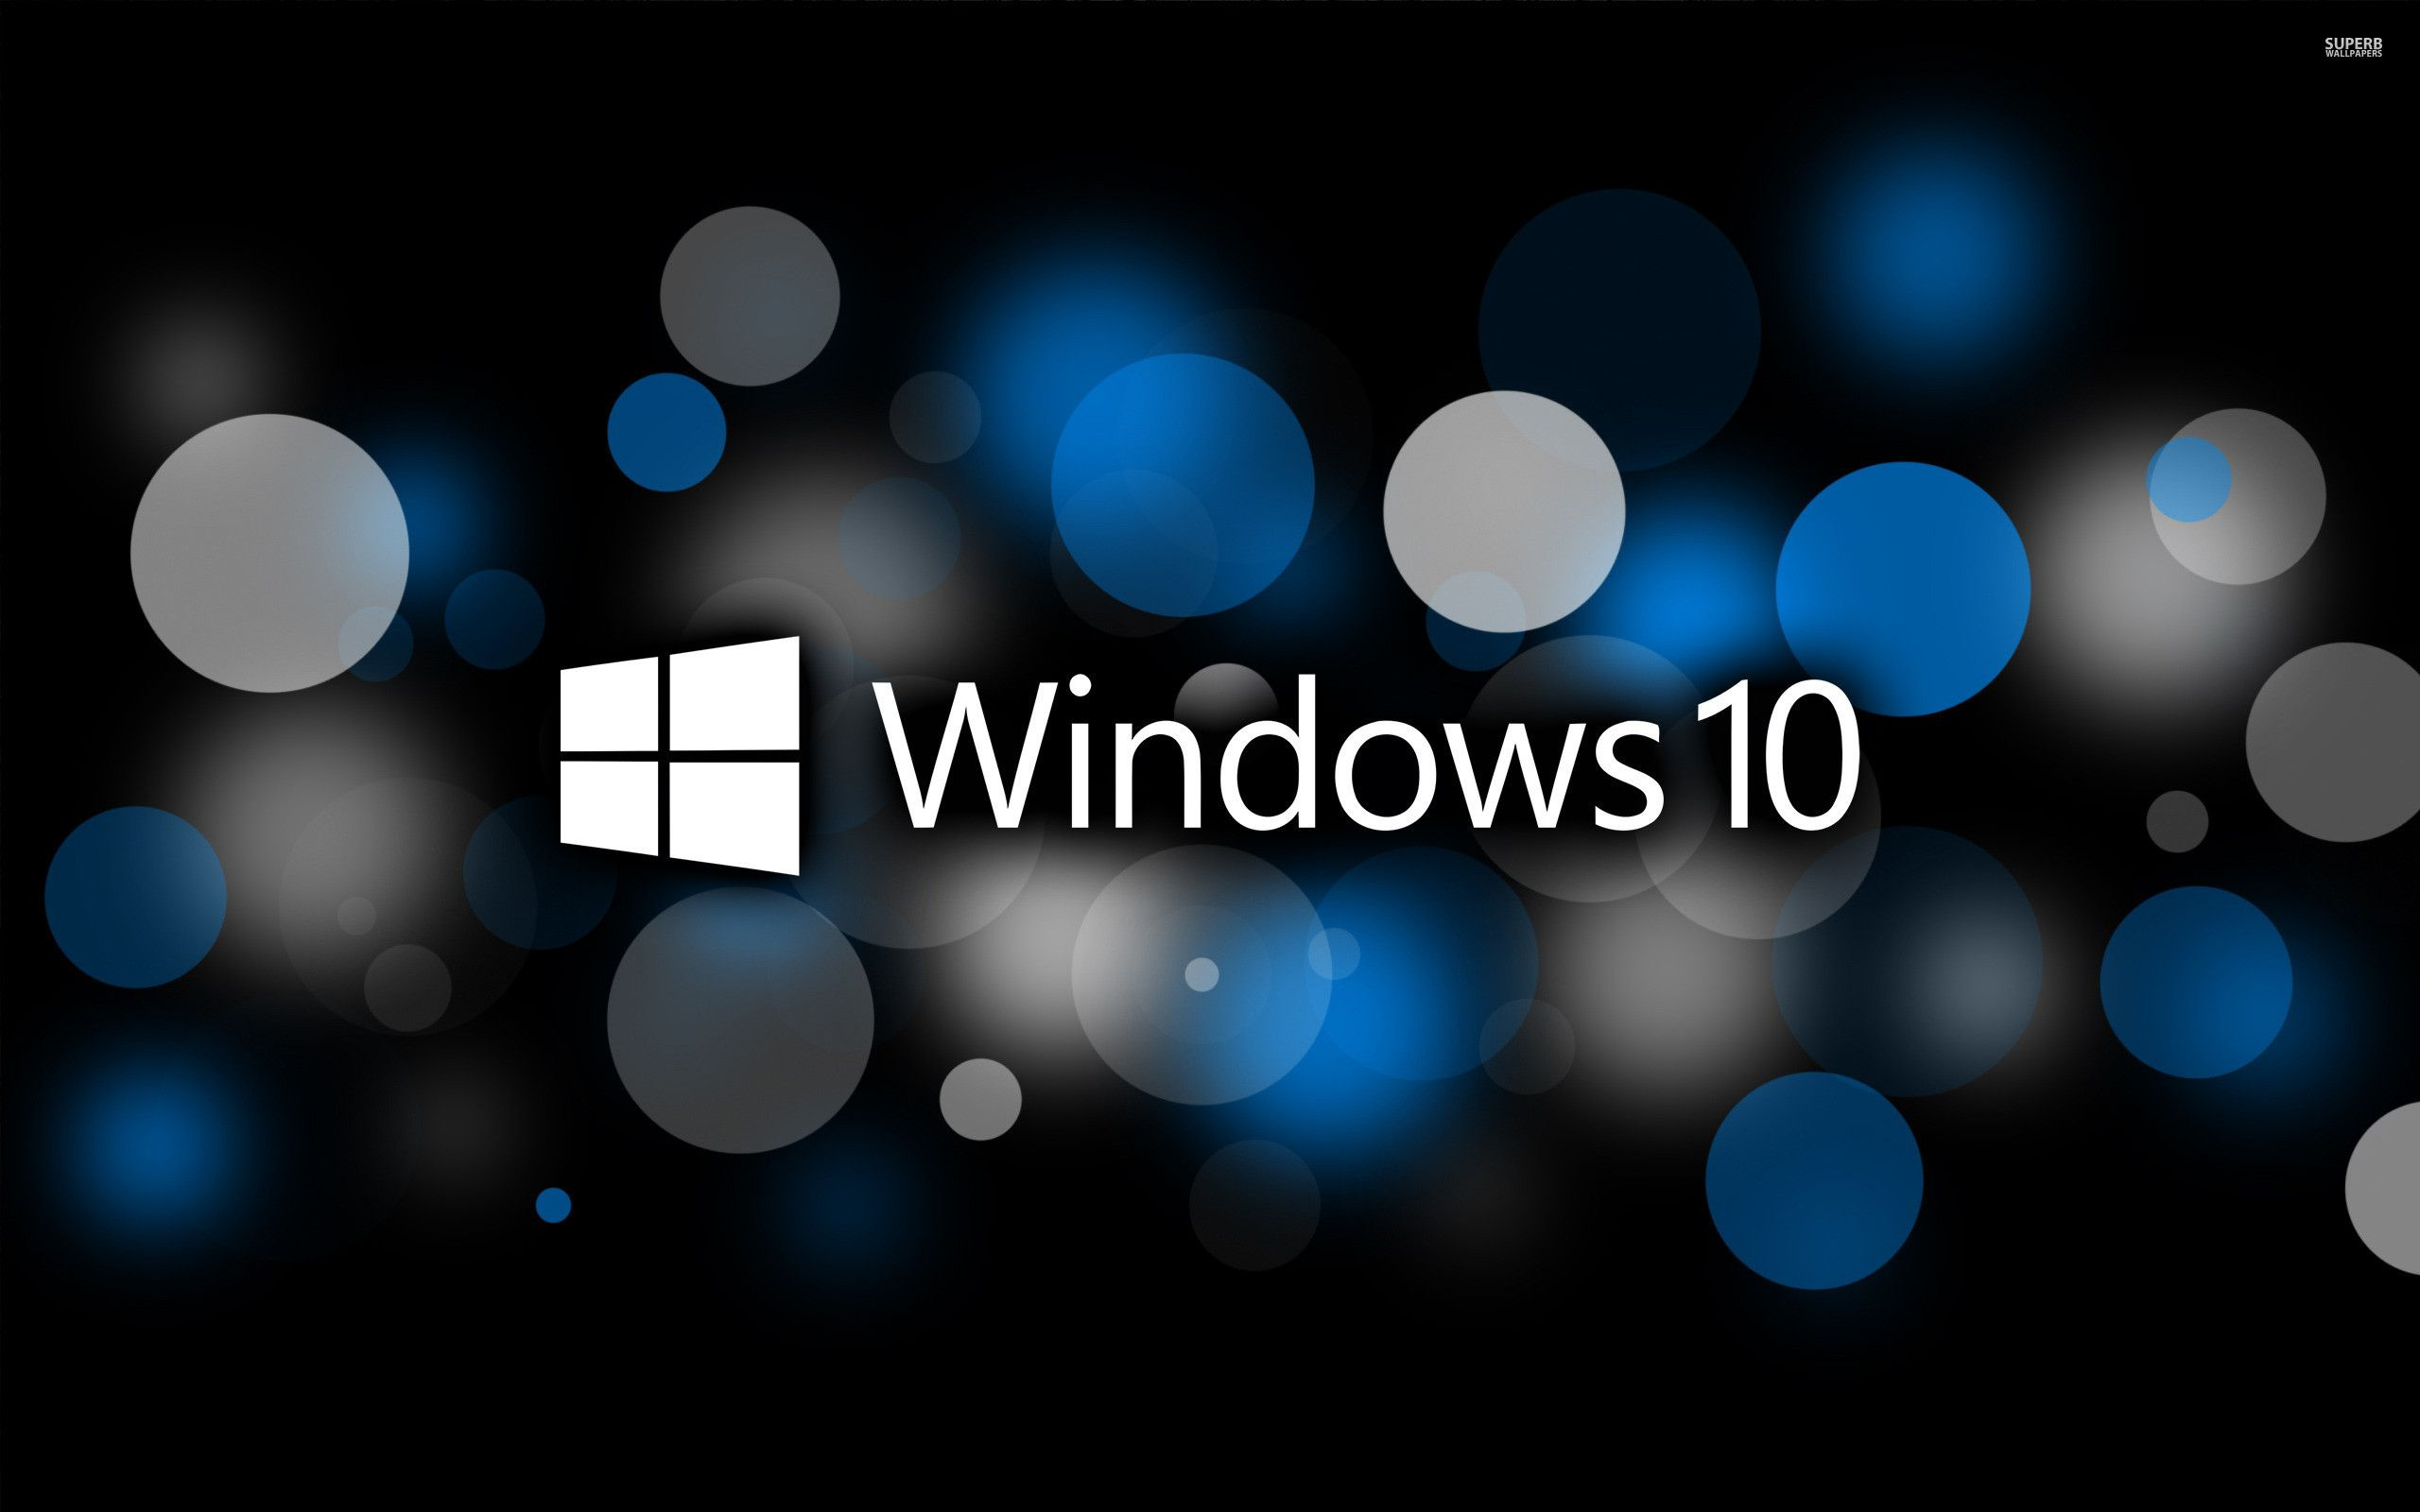 Wallpaper Hd Windows 10 Logo In 2020 Wallpaper Windows 10